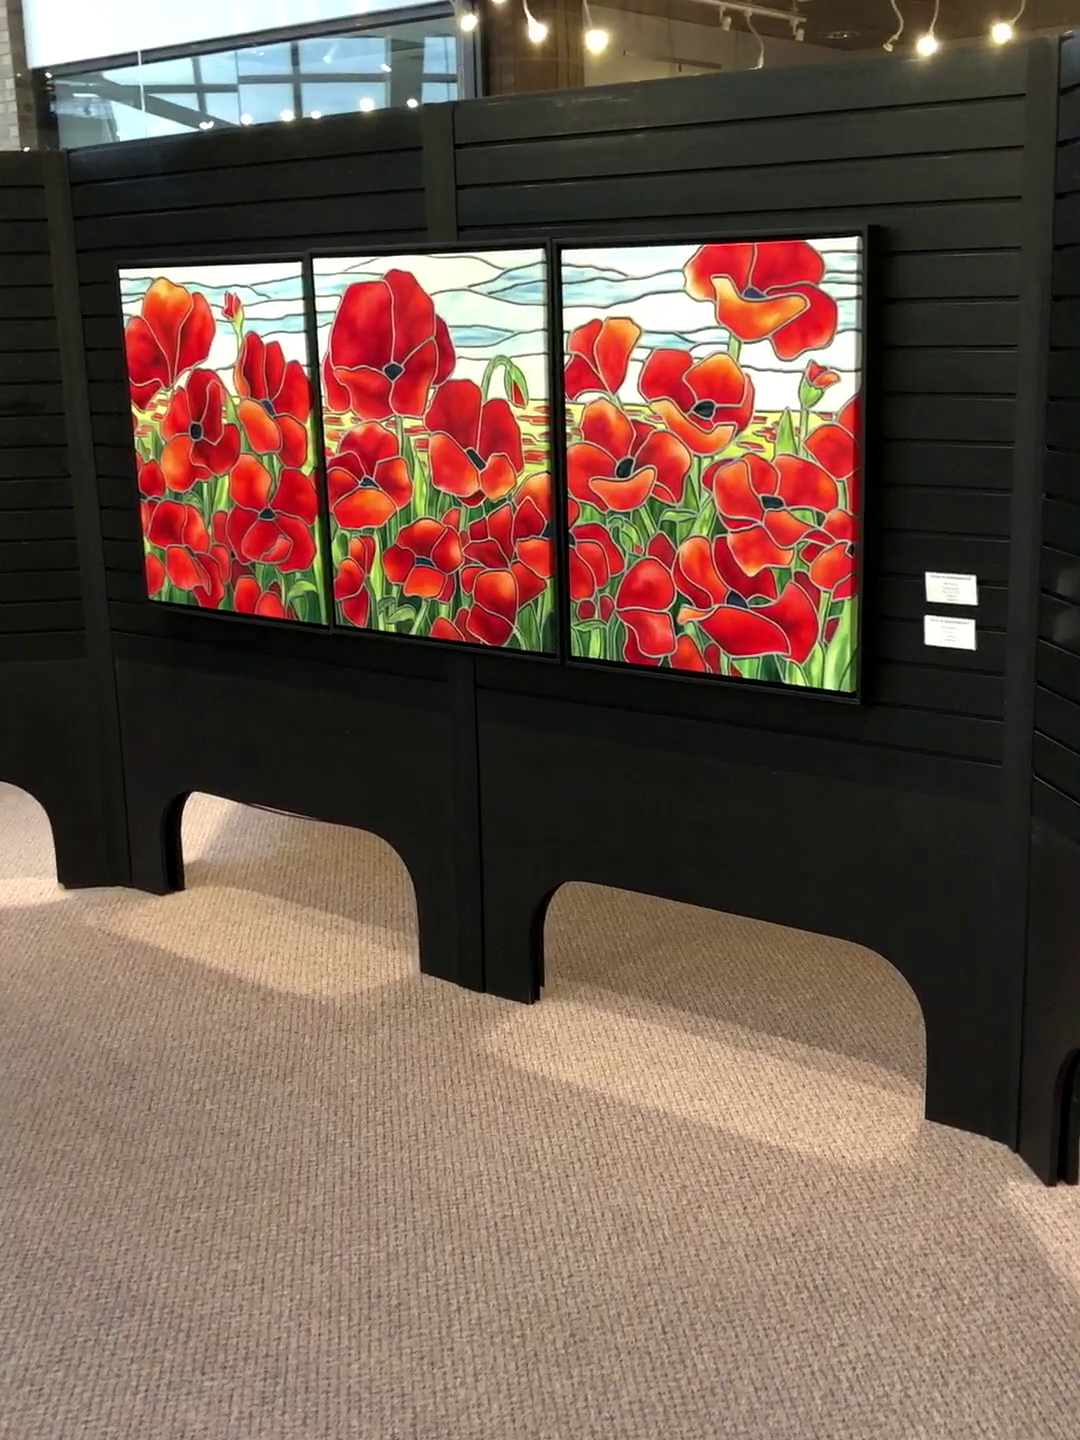 """Field of Remembrance"" on display"